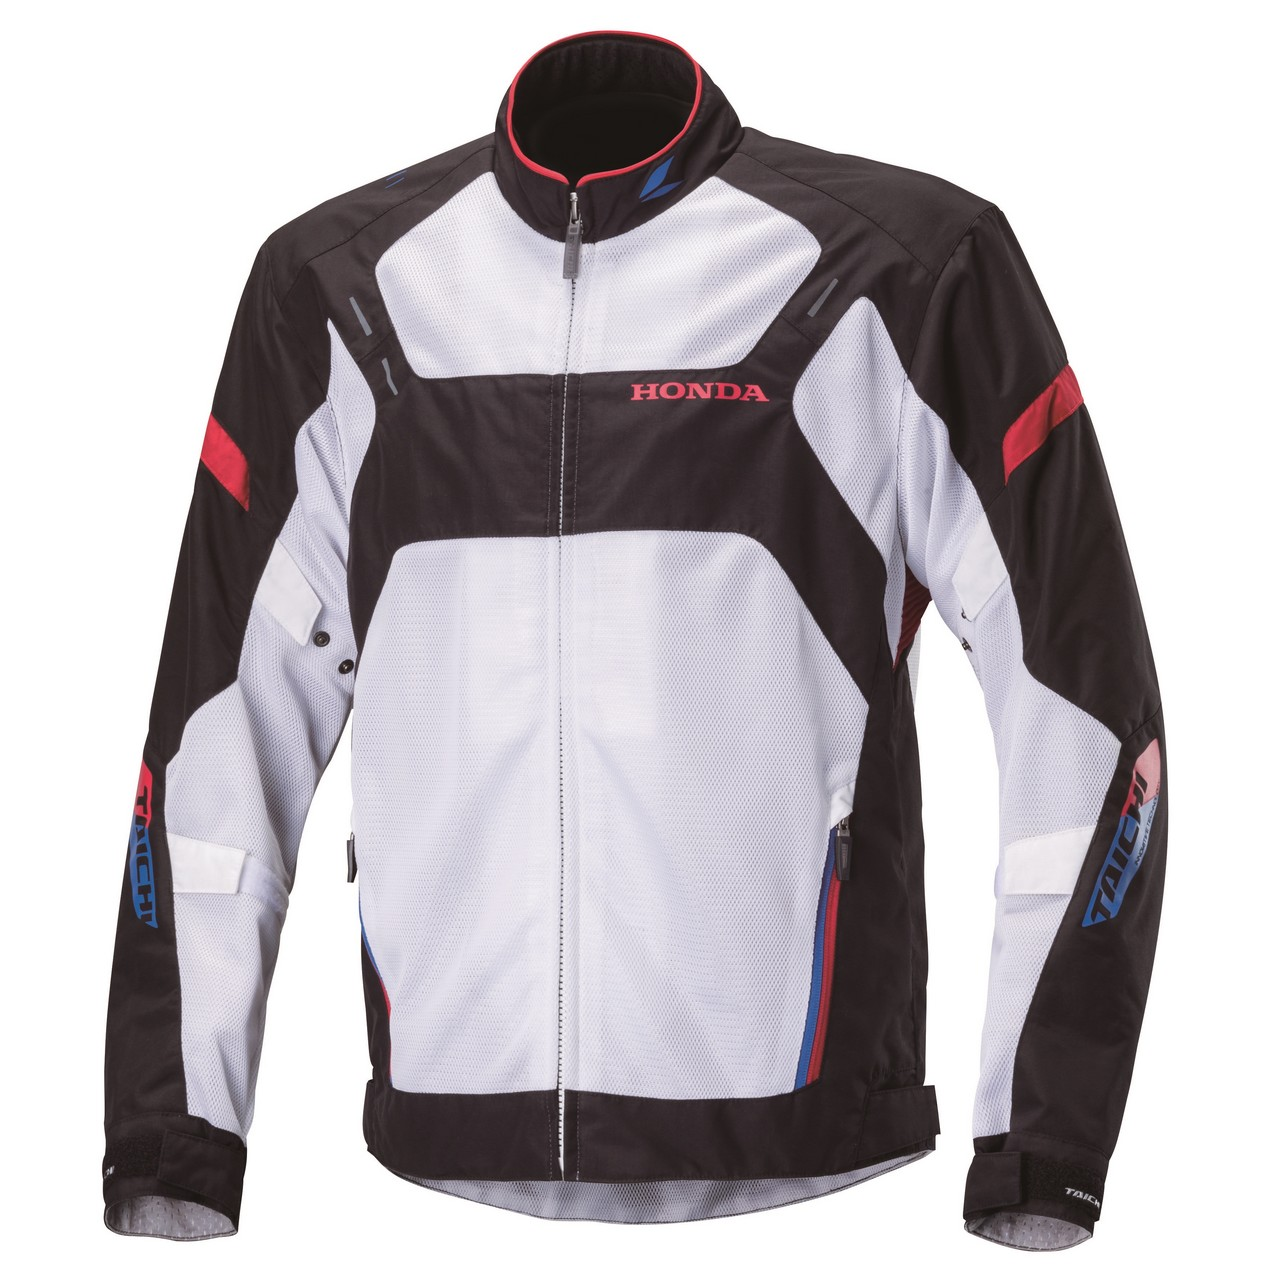 HONDA RIDING GEAR [HONDAxRS TAICHI] Crossover Mesh Jacket